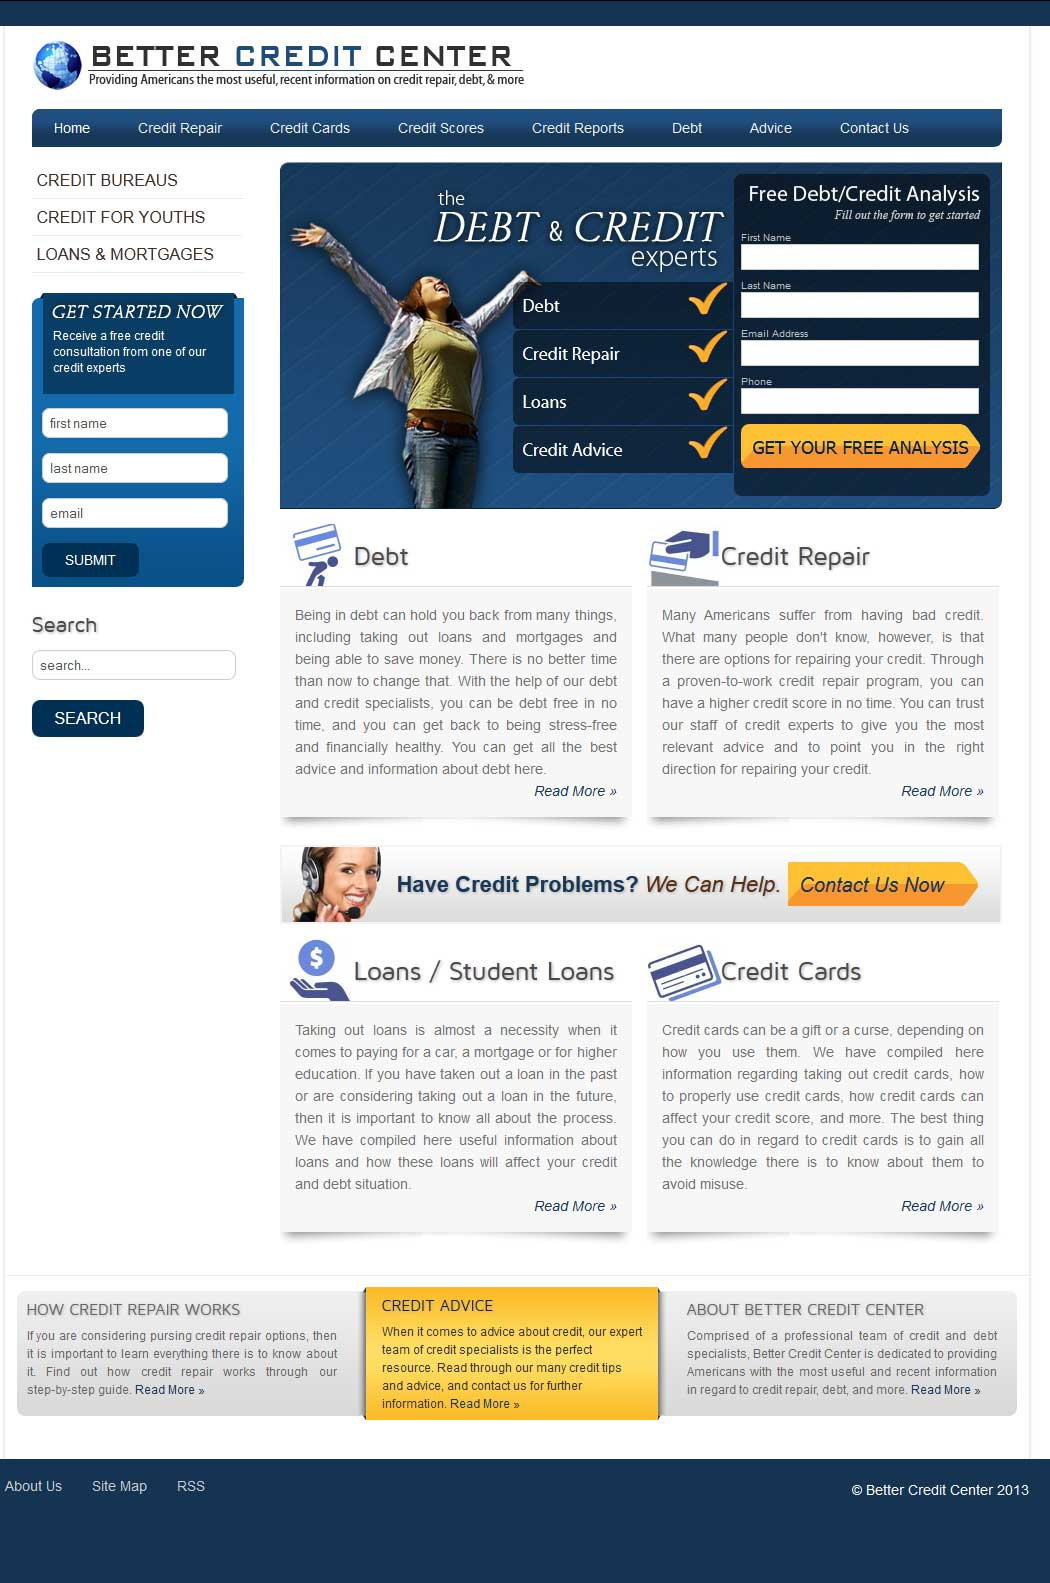 Better Credit Center Website Design & Development